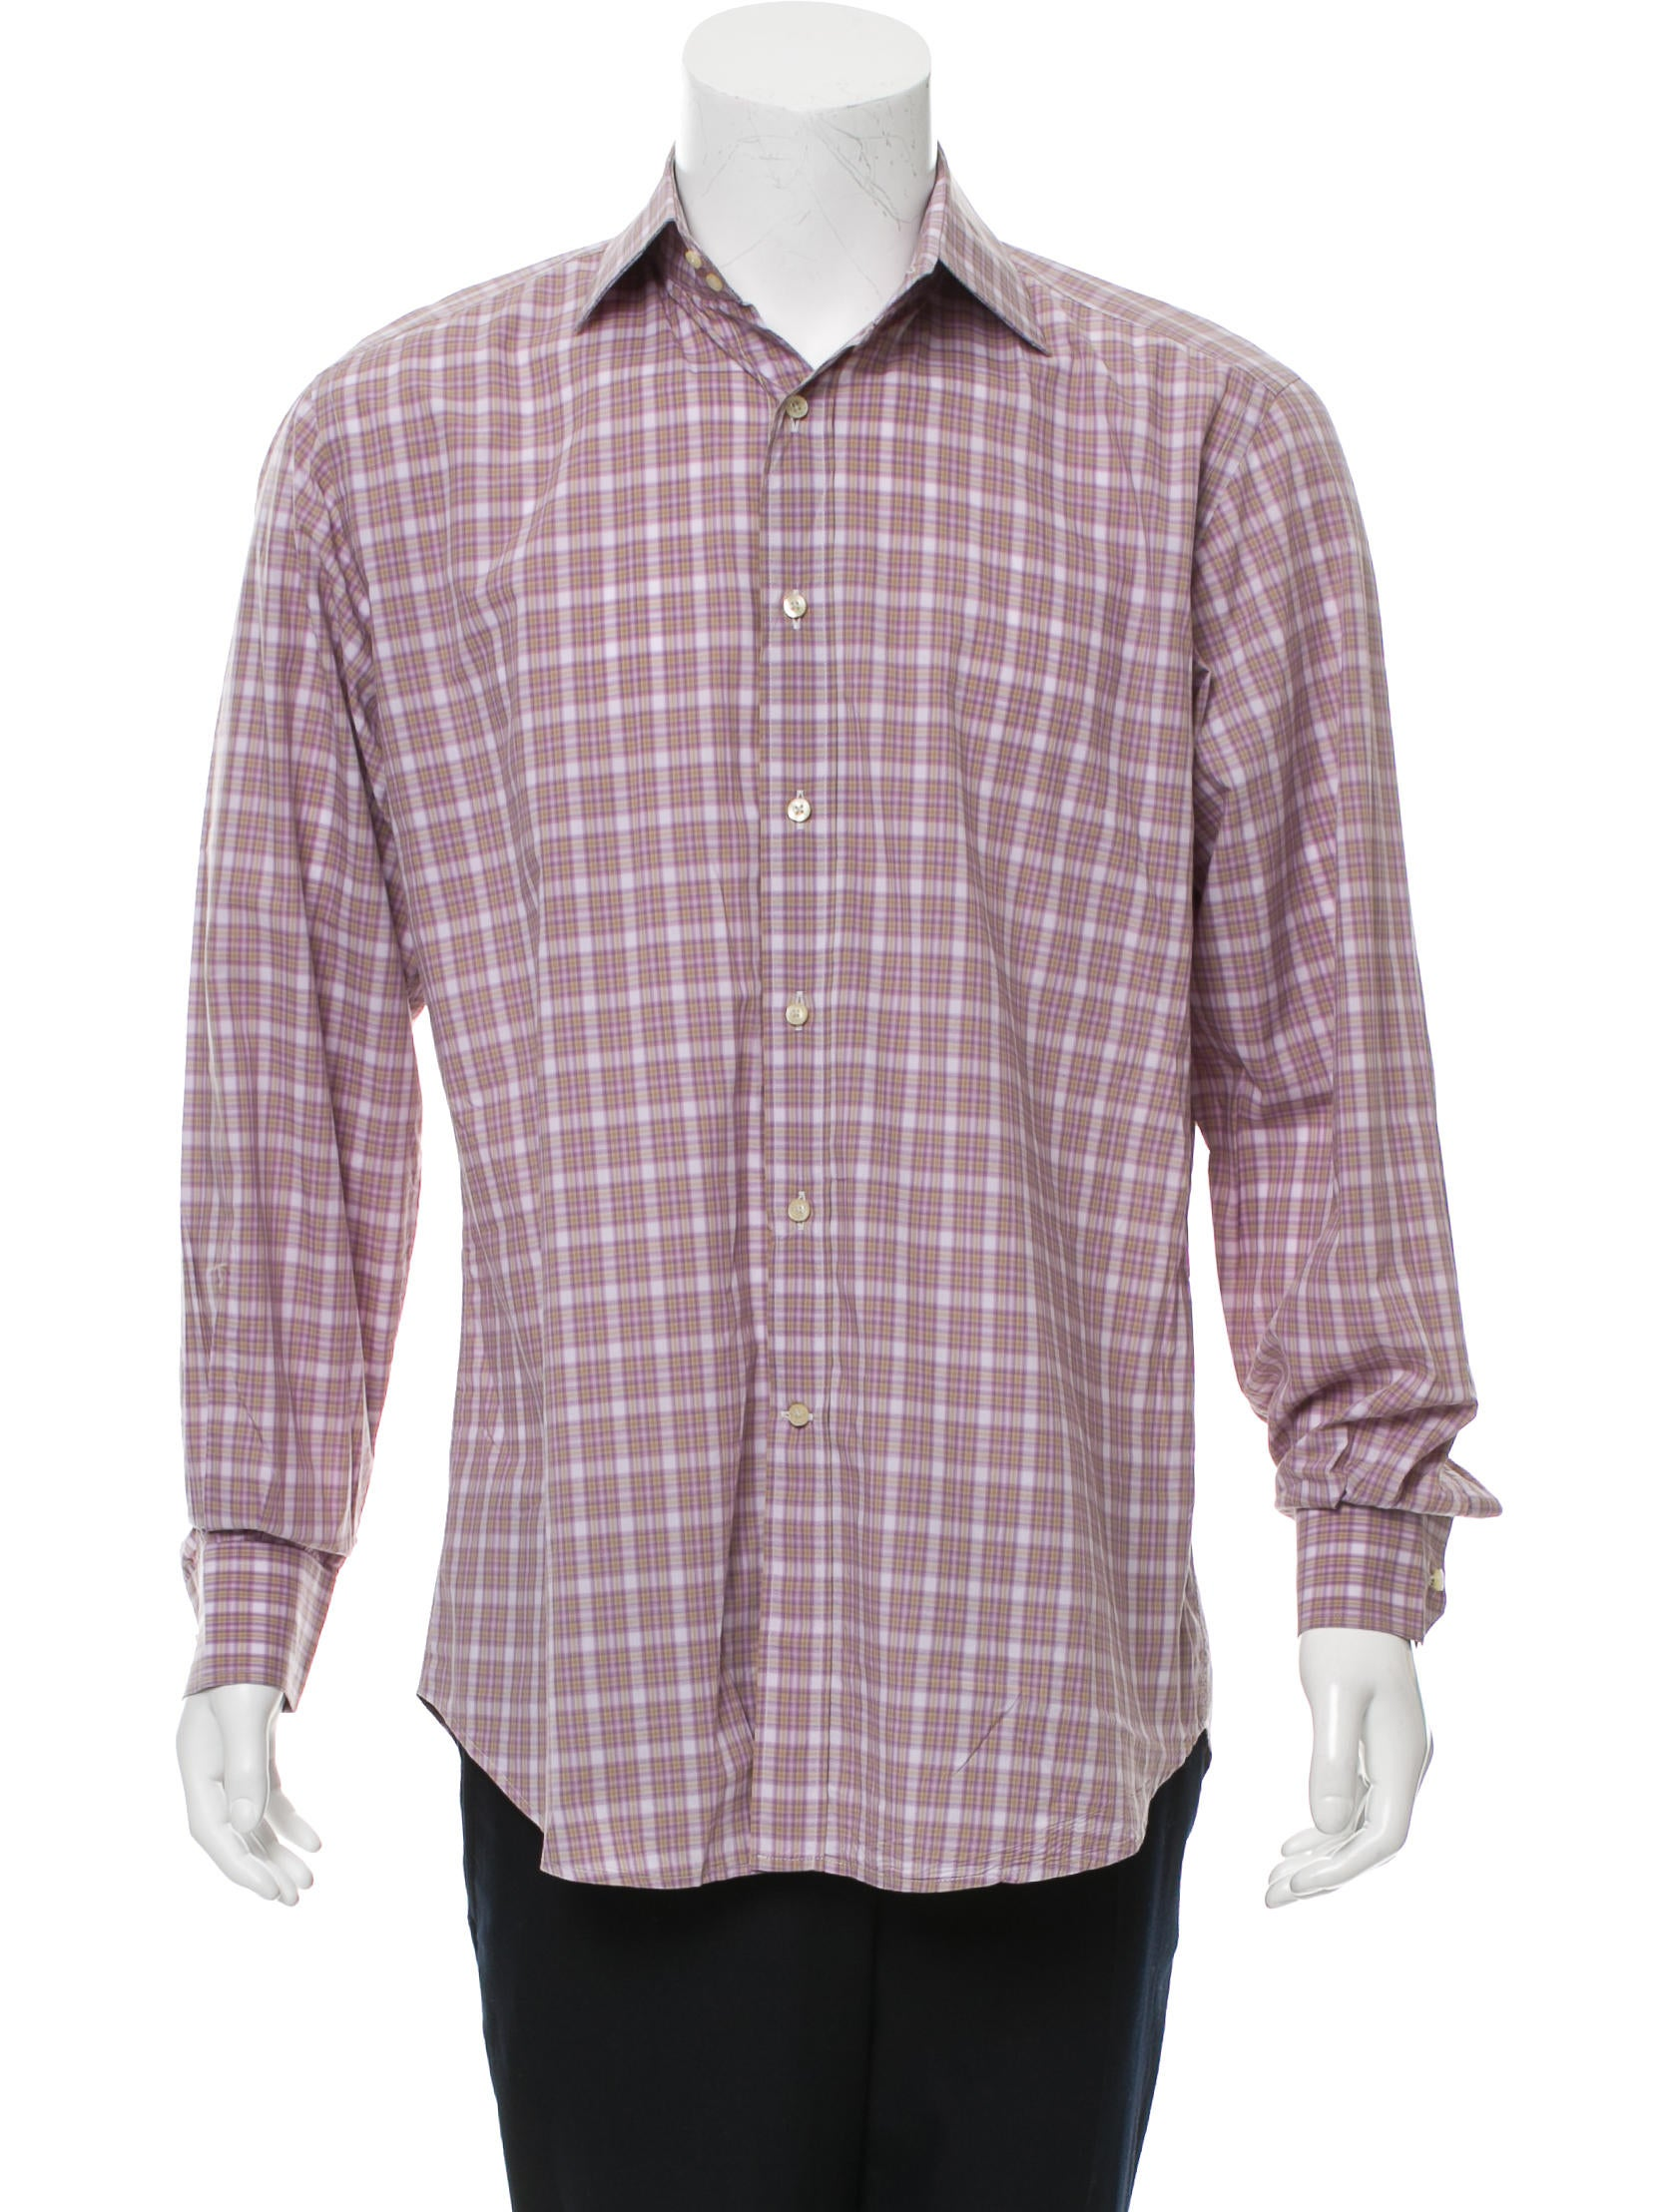 Casual Button-Down Shirts Apply. Filter By clear all. Free Pick Up In Store Clear. Offers Clear. Plaid Casual Button-Down Shirts. Narrow by Brand. Polo Ralph Lauren. Nautica. American Rag. Tommy Hilfiger. Club Room. Barbour. Alfani.